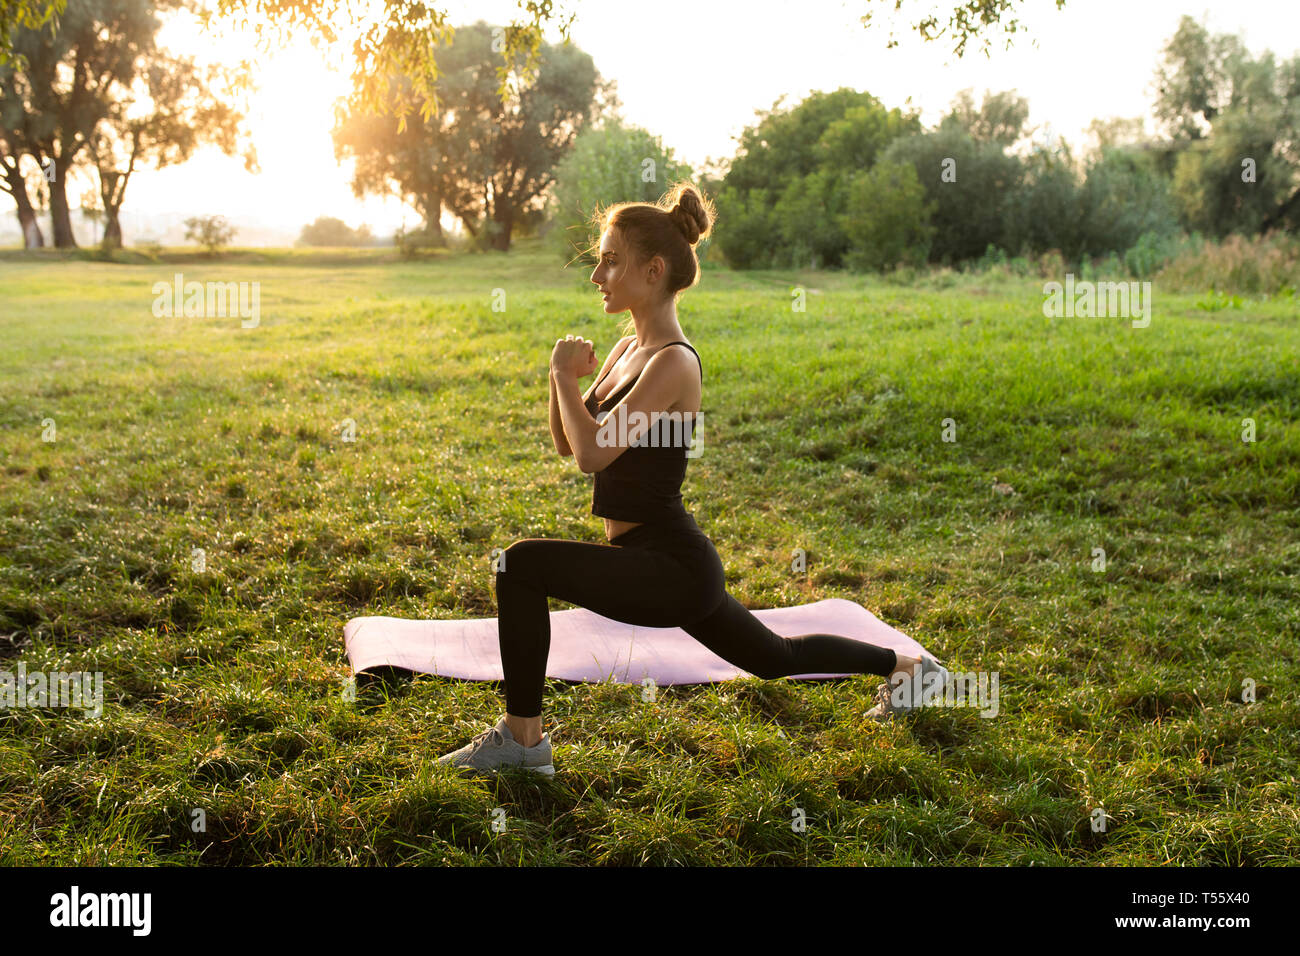 Young woman practicing yoga in park Stock Photo